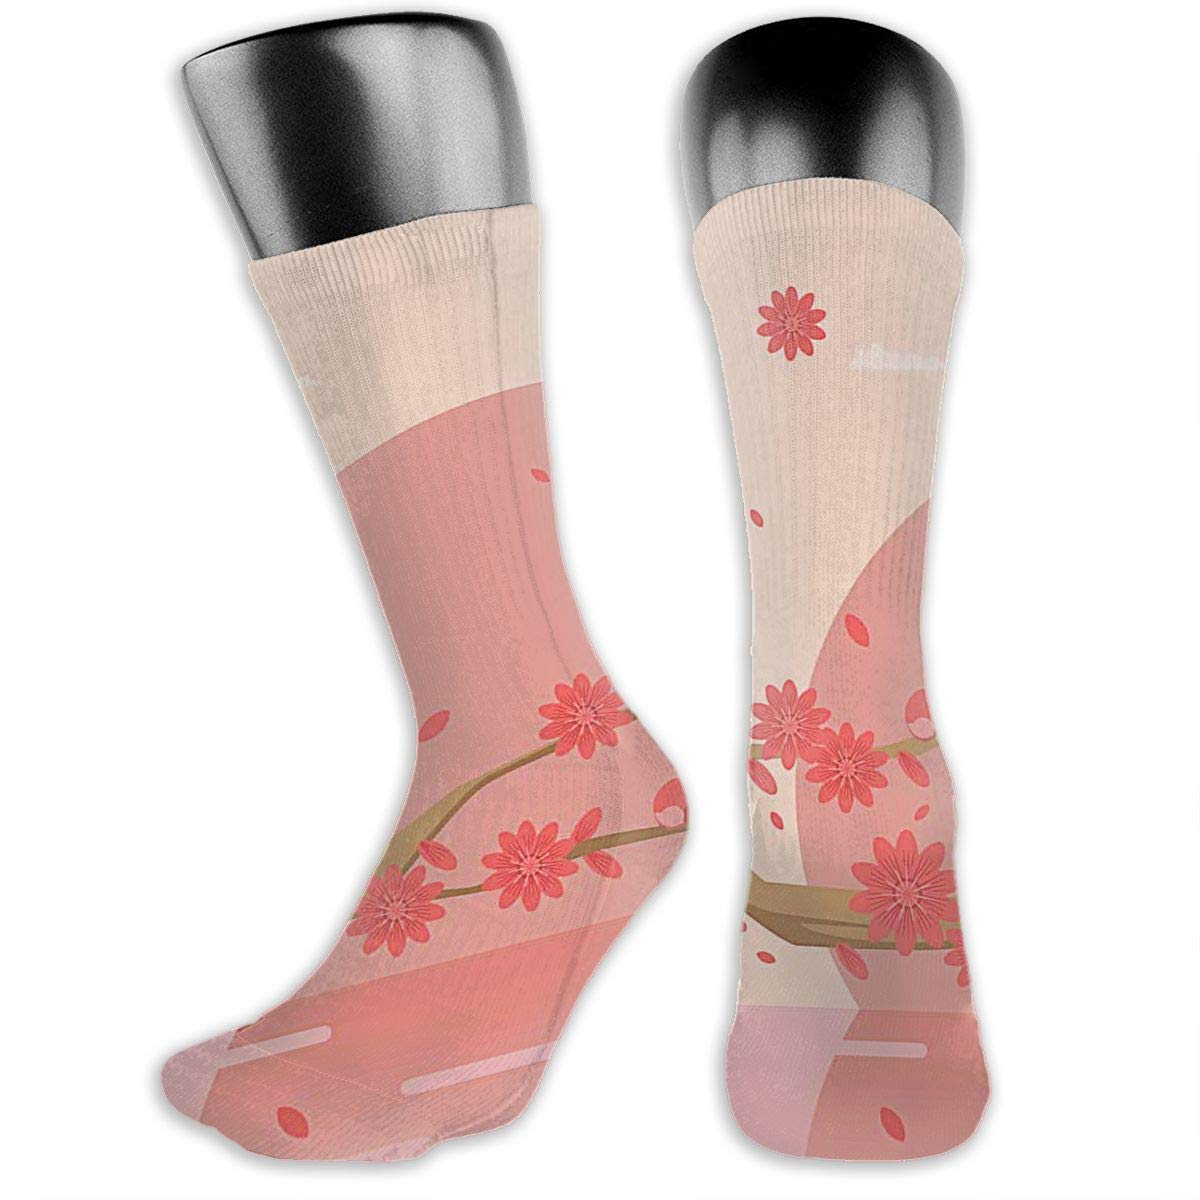 OLGCZM Elegant Spring Decorated with Peach Flowers Men Womens Thin High Ankle Casual Socks Fit Outdoor Hiking Trail